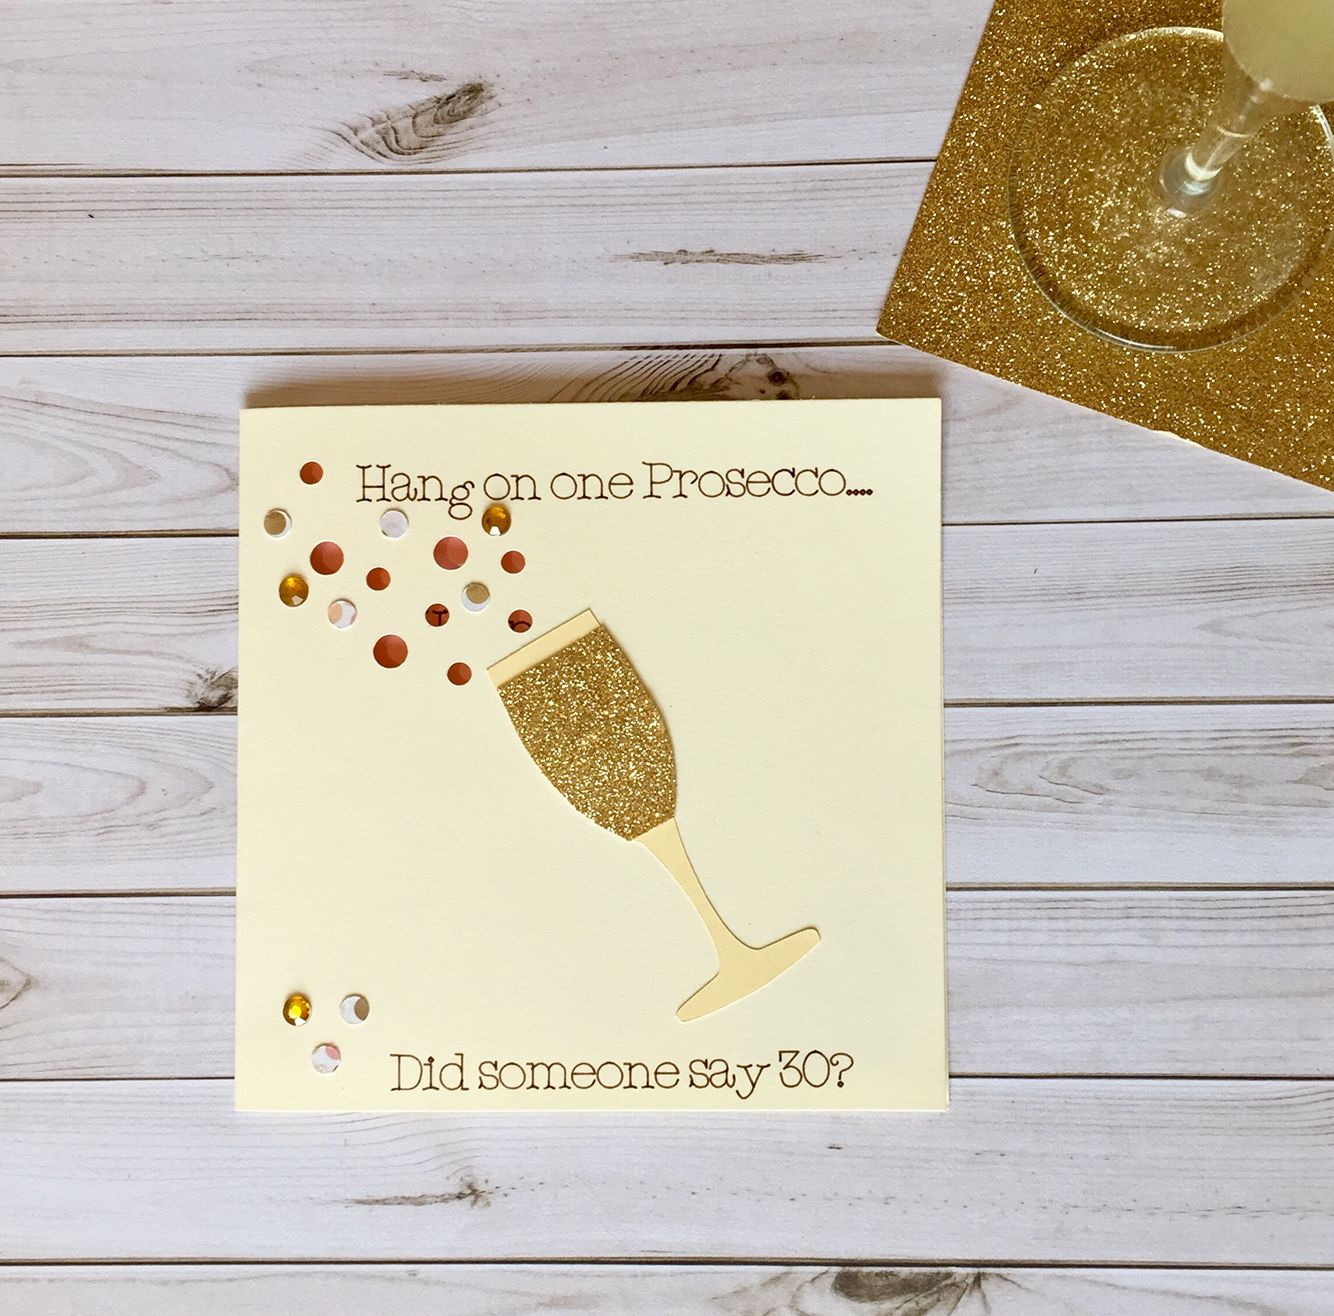 Prosecco card hang on one prosecco prosecco birthday card prosecco card hang on one prosecco prosecco birthday card prosecco engagement card handmade kristyandbryce Choice Image